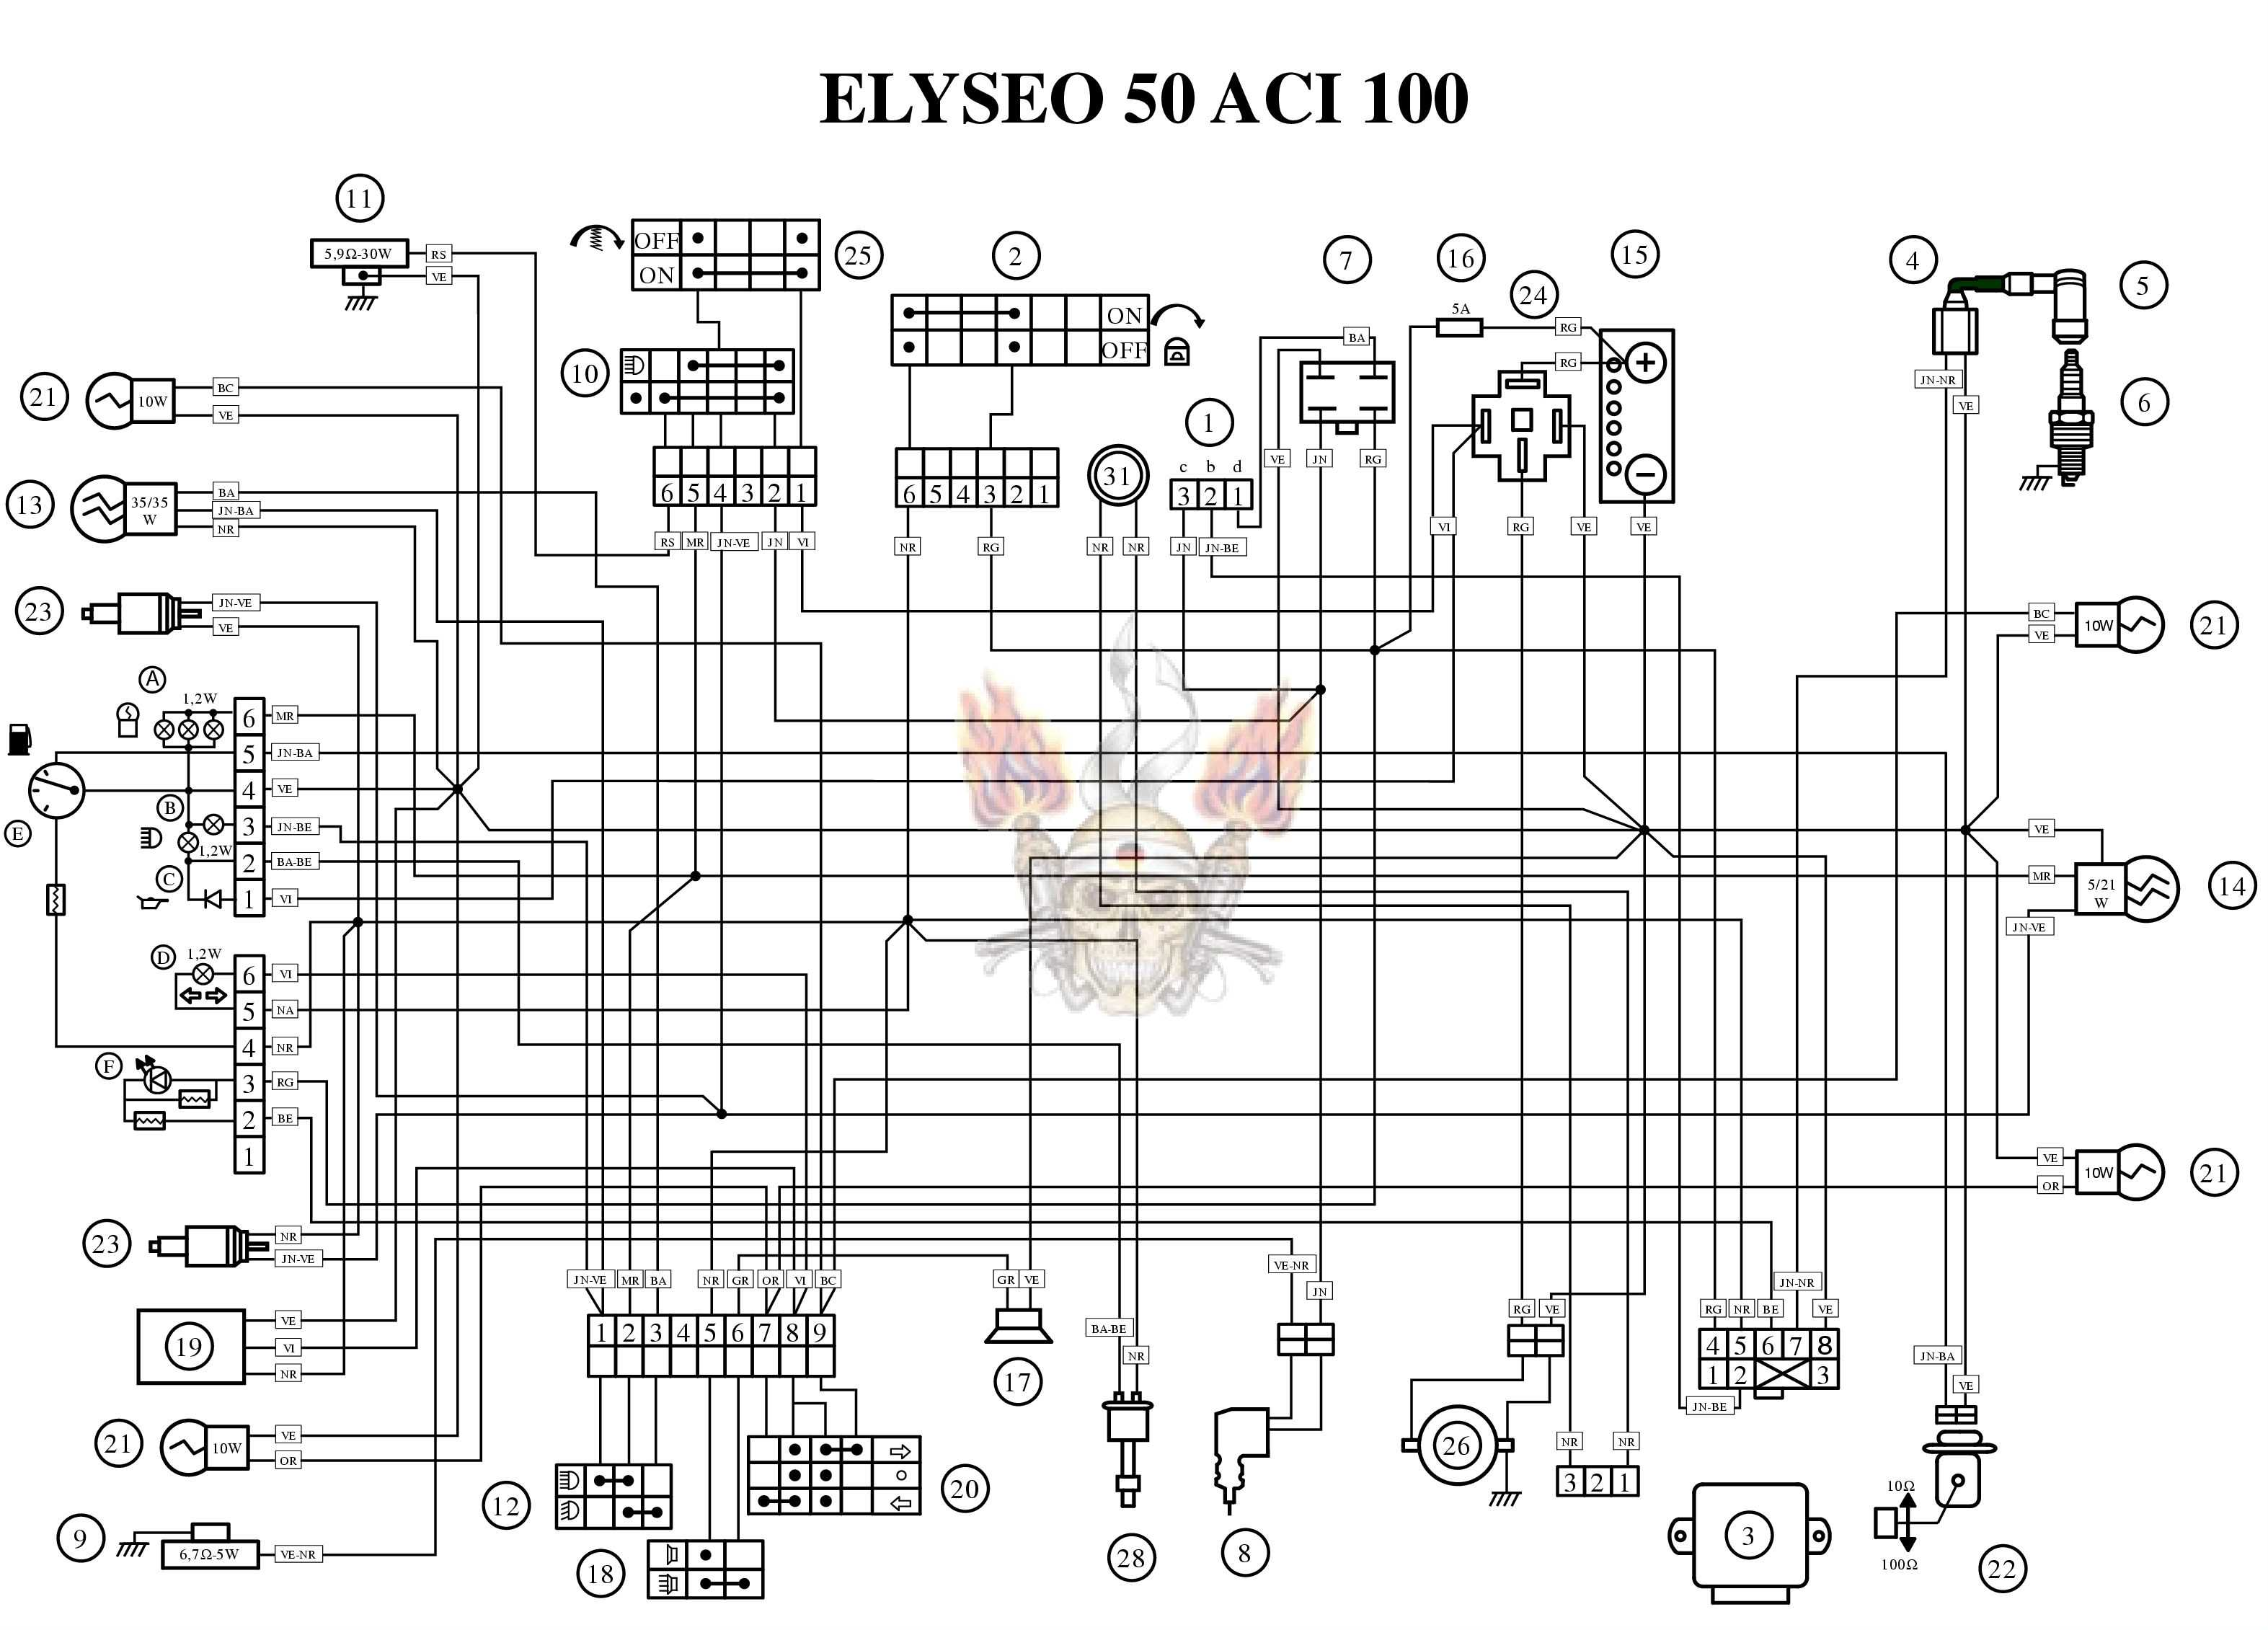 Wiring Diagram Peugeot ELYSEO 50 ACI 100?t\\\\\\=1485078190 peugeot 308 wiring diagram download wiring diagram and schematic c90 wiring diagram at readyjetset.co